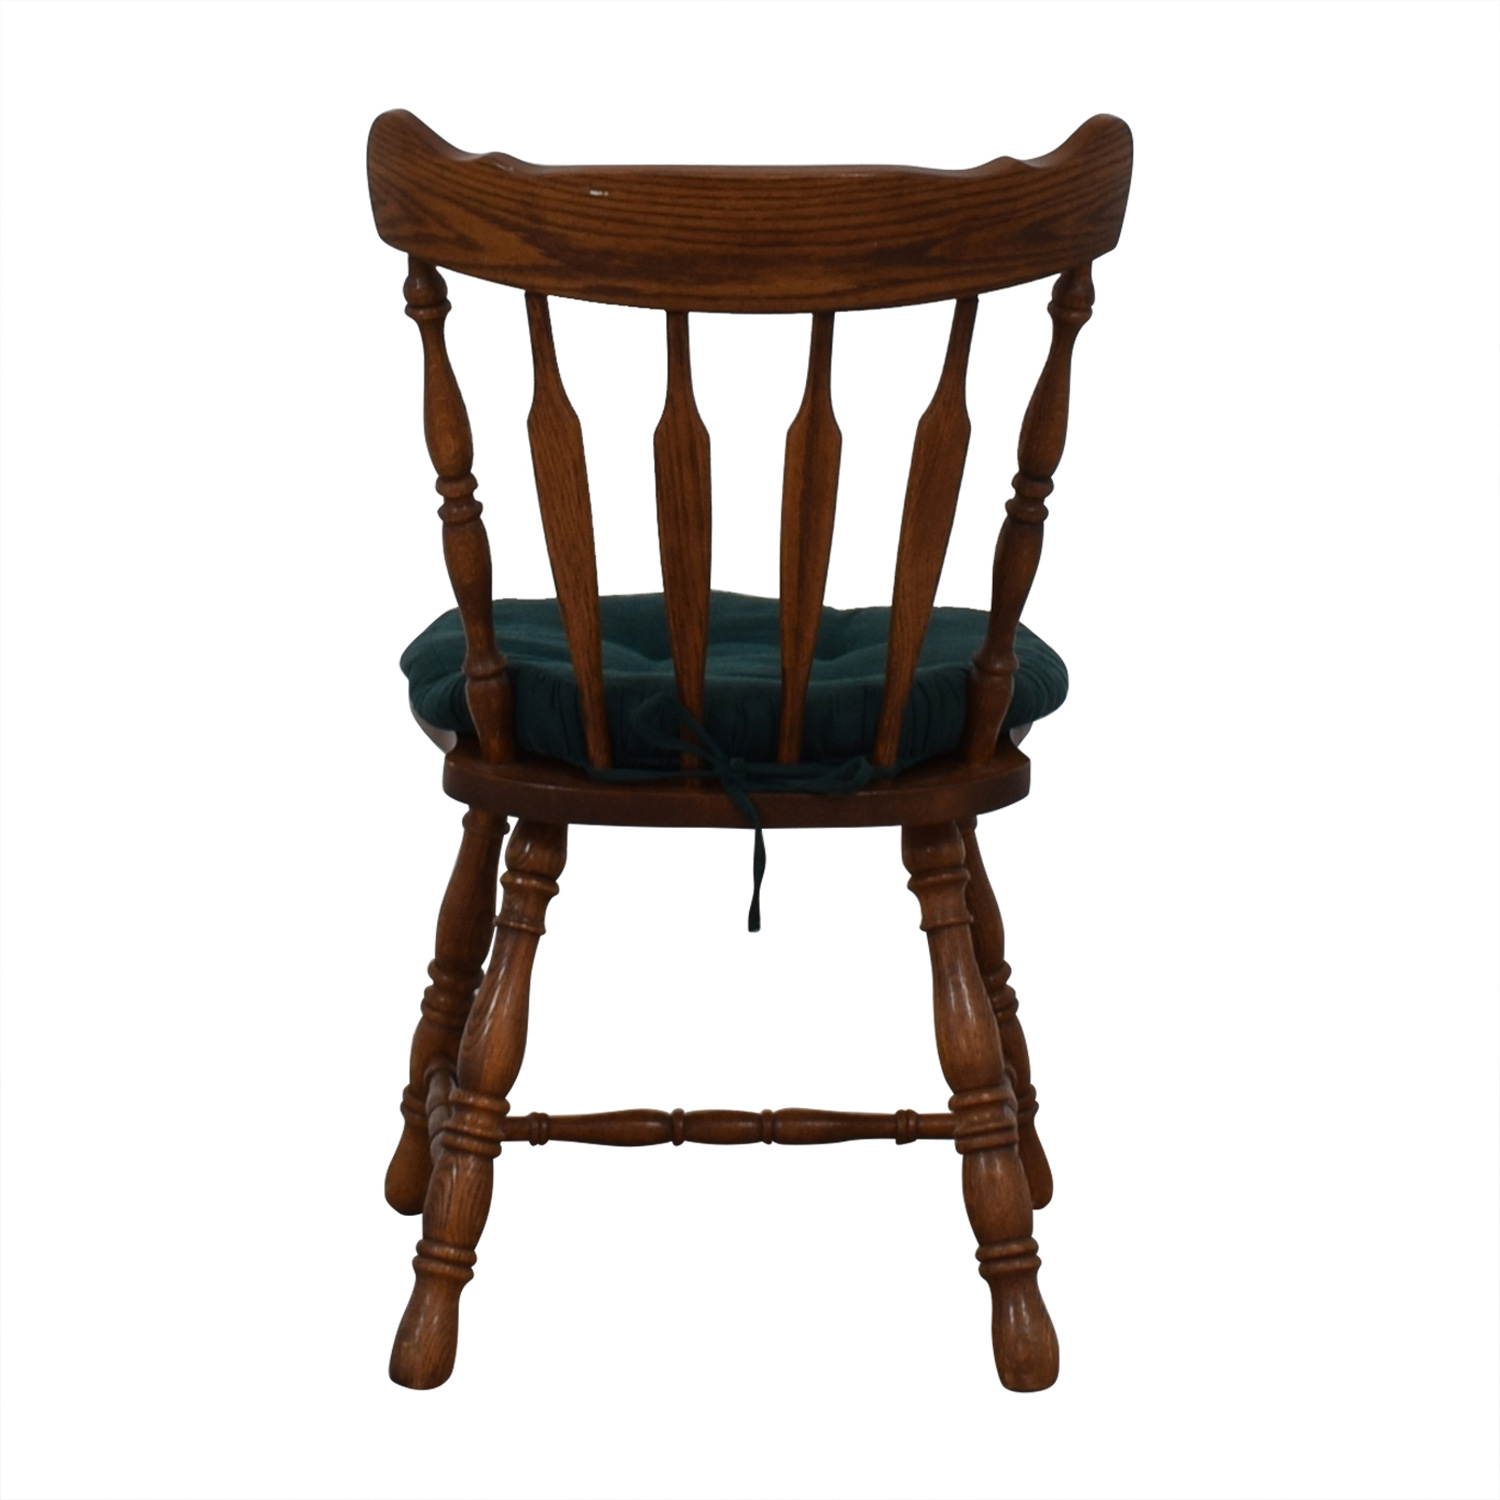 Wood Chair with Teal Cushion price